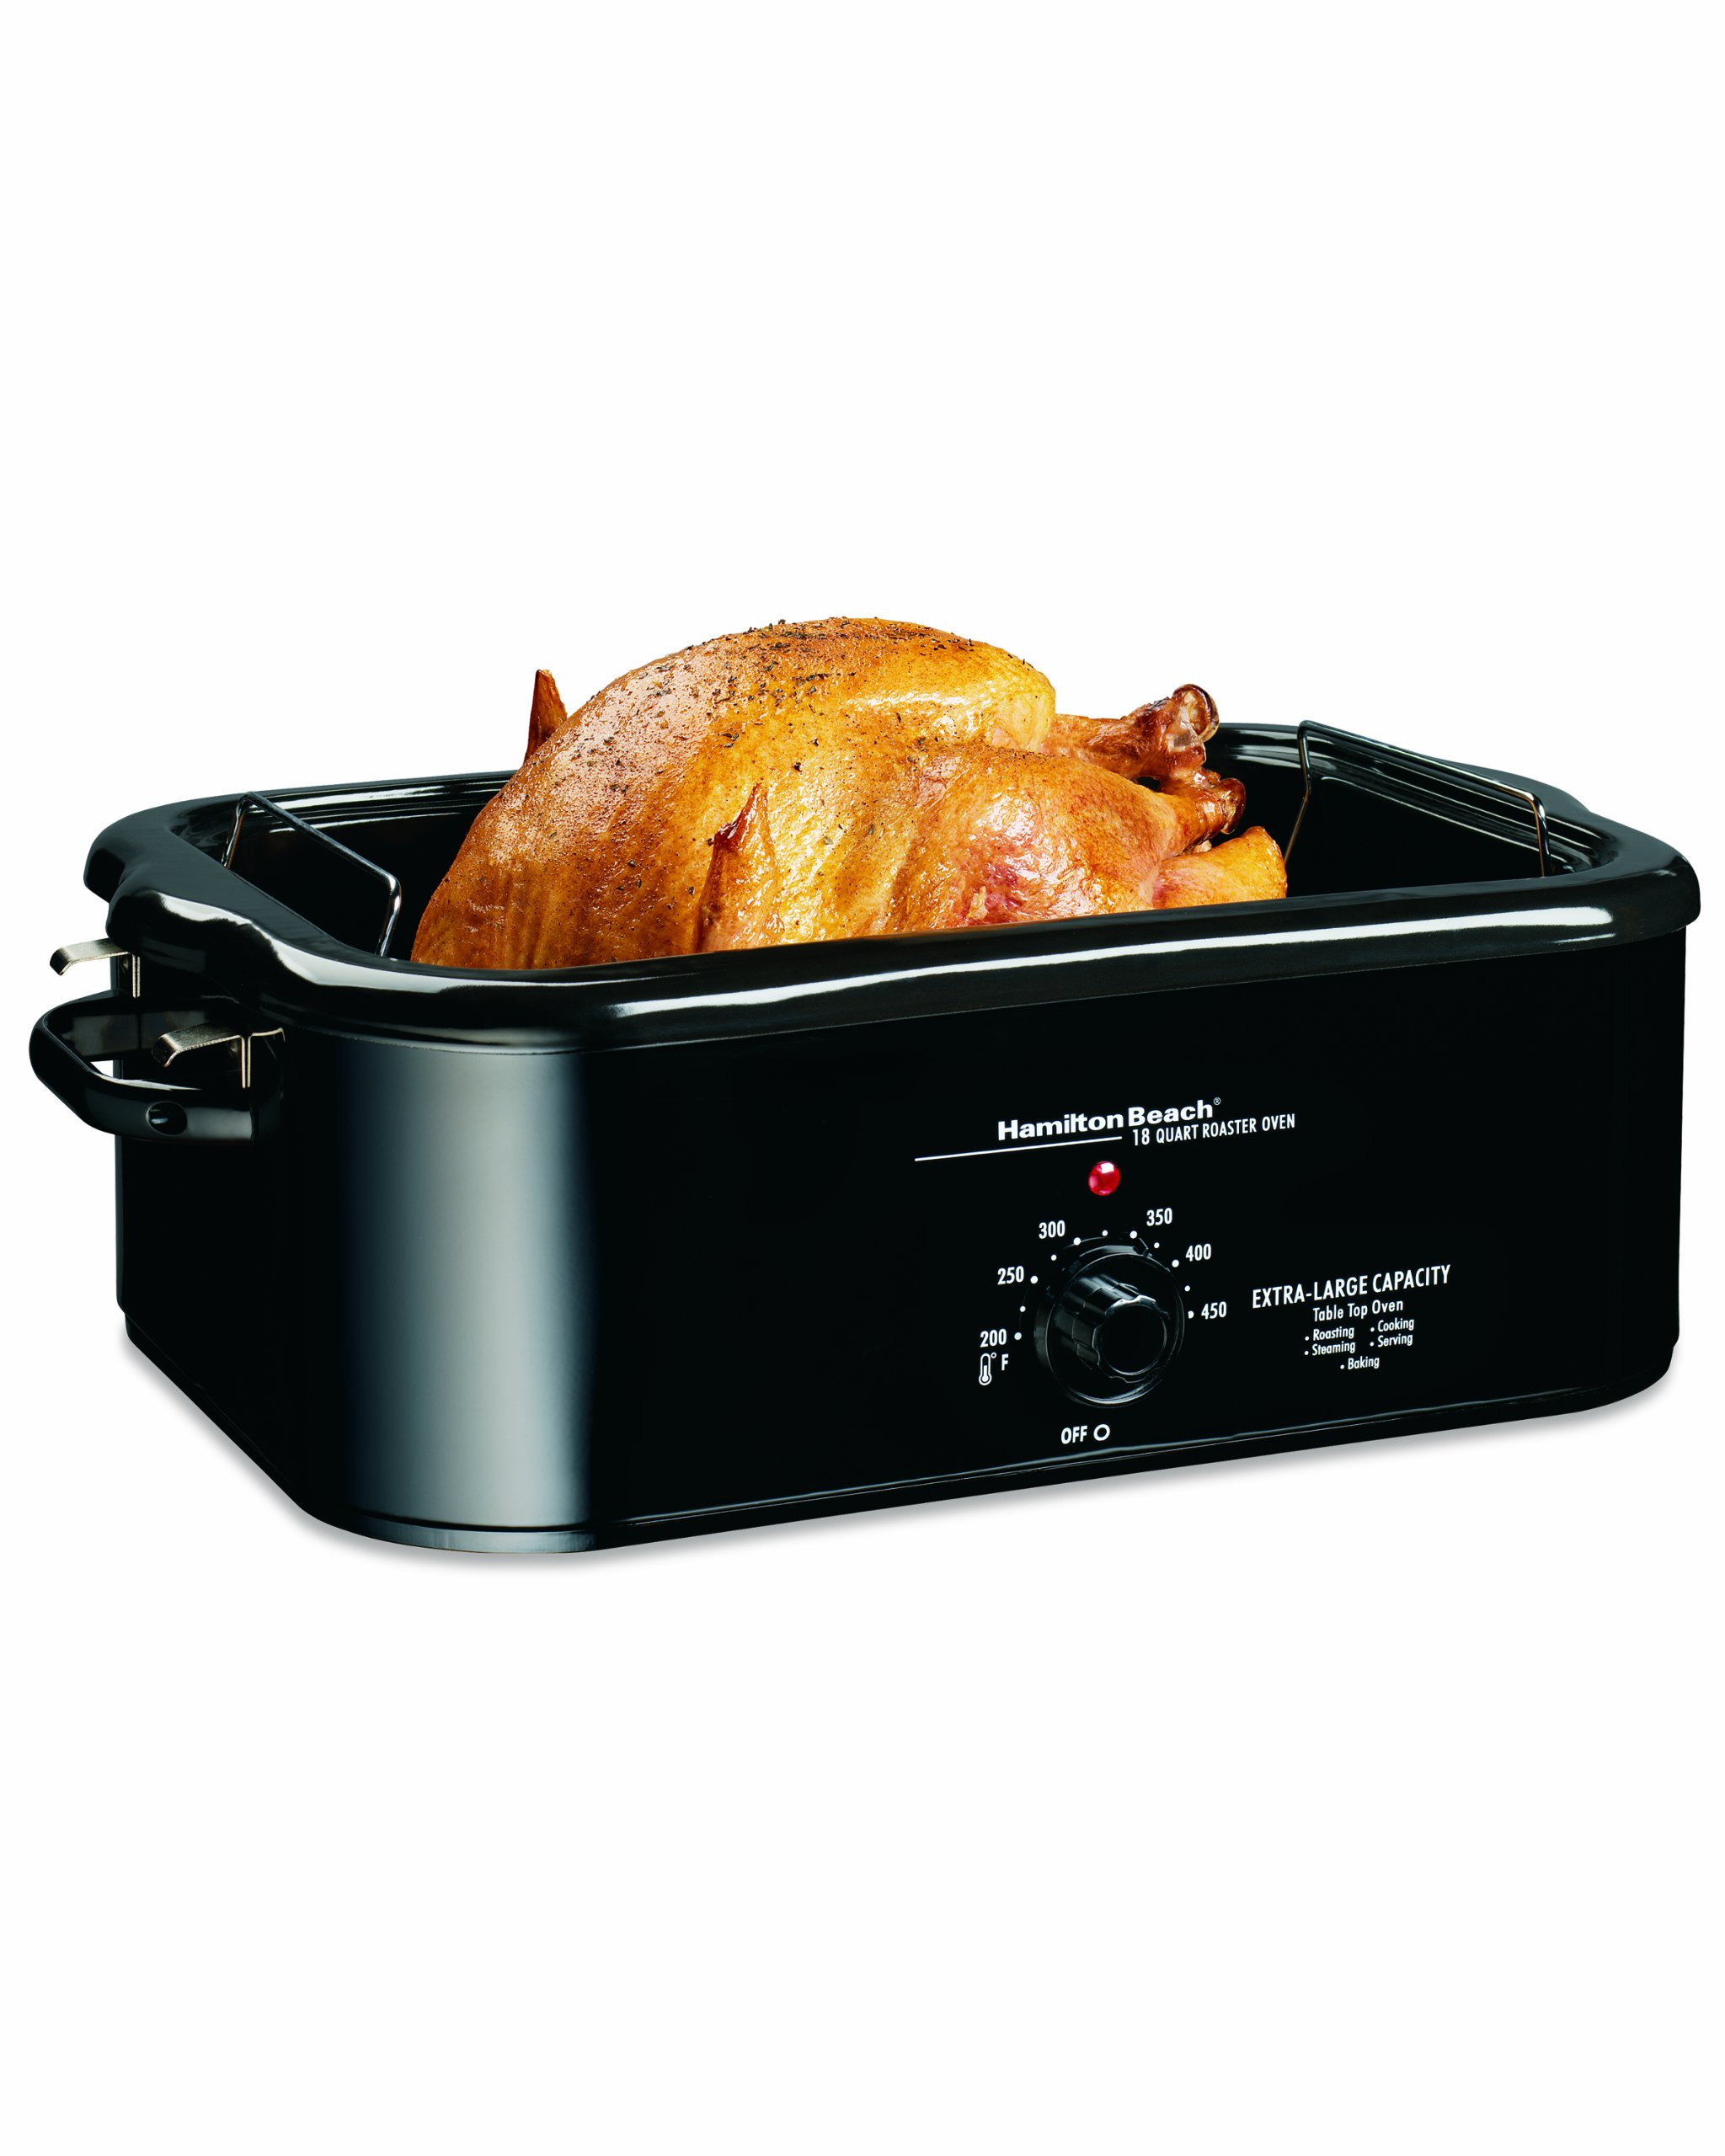 Hamilton Beach 32184 18-Quart Roaster Oven with Serving Lid and Buffet Pans, Black